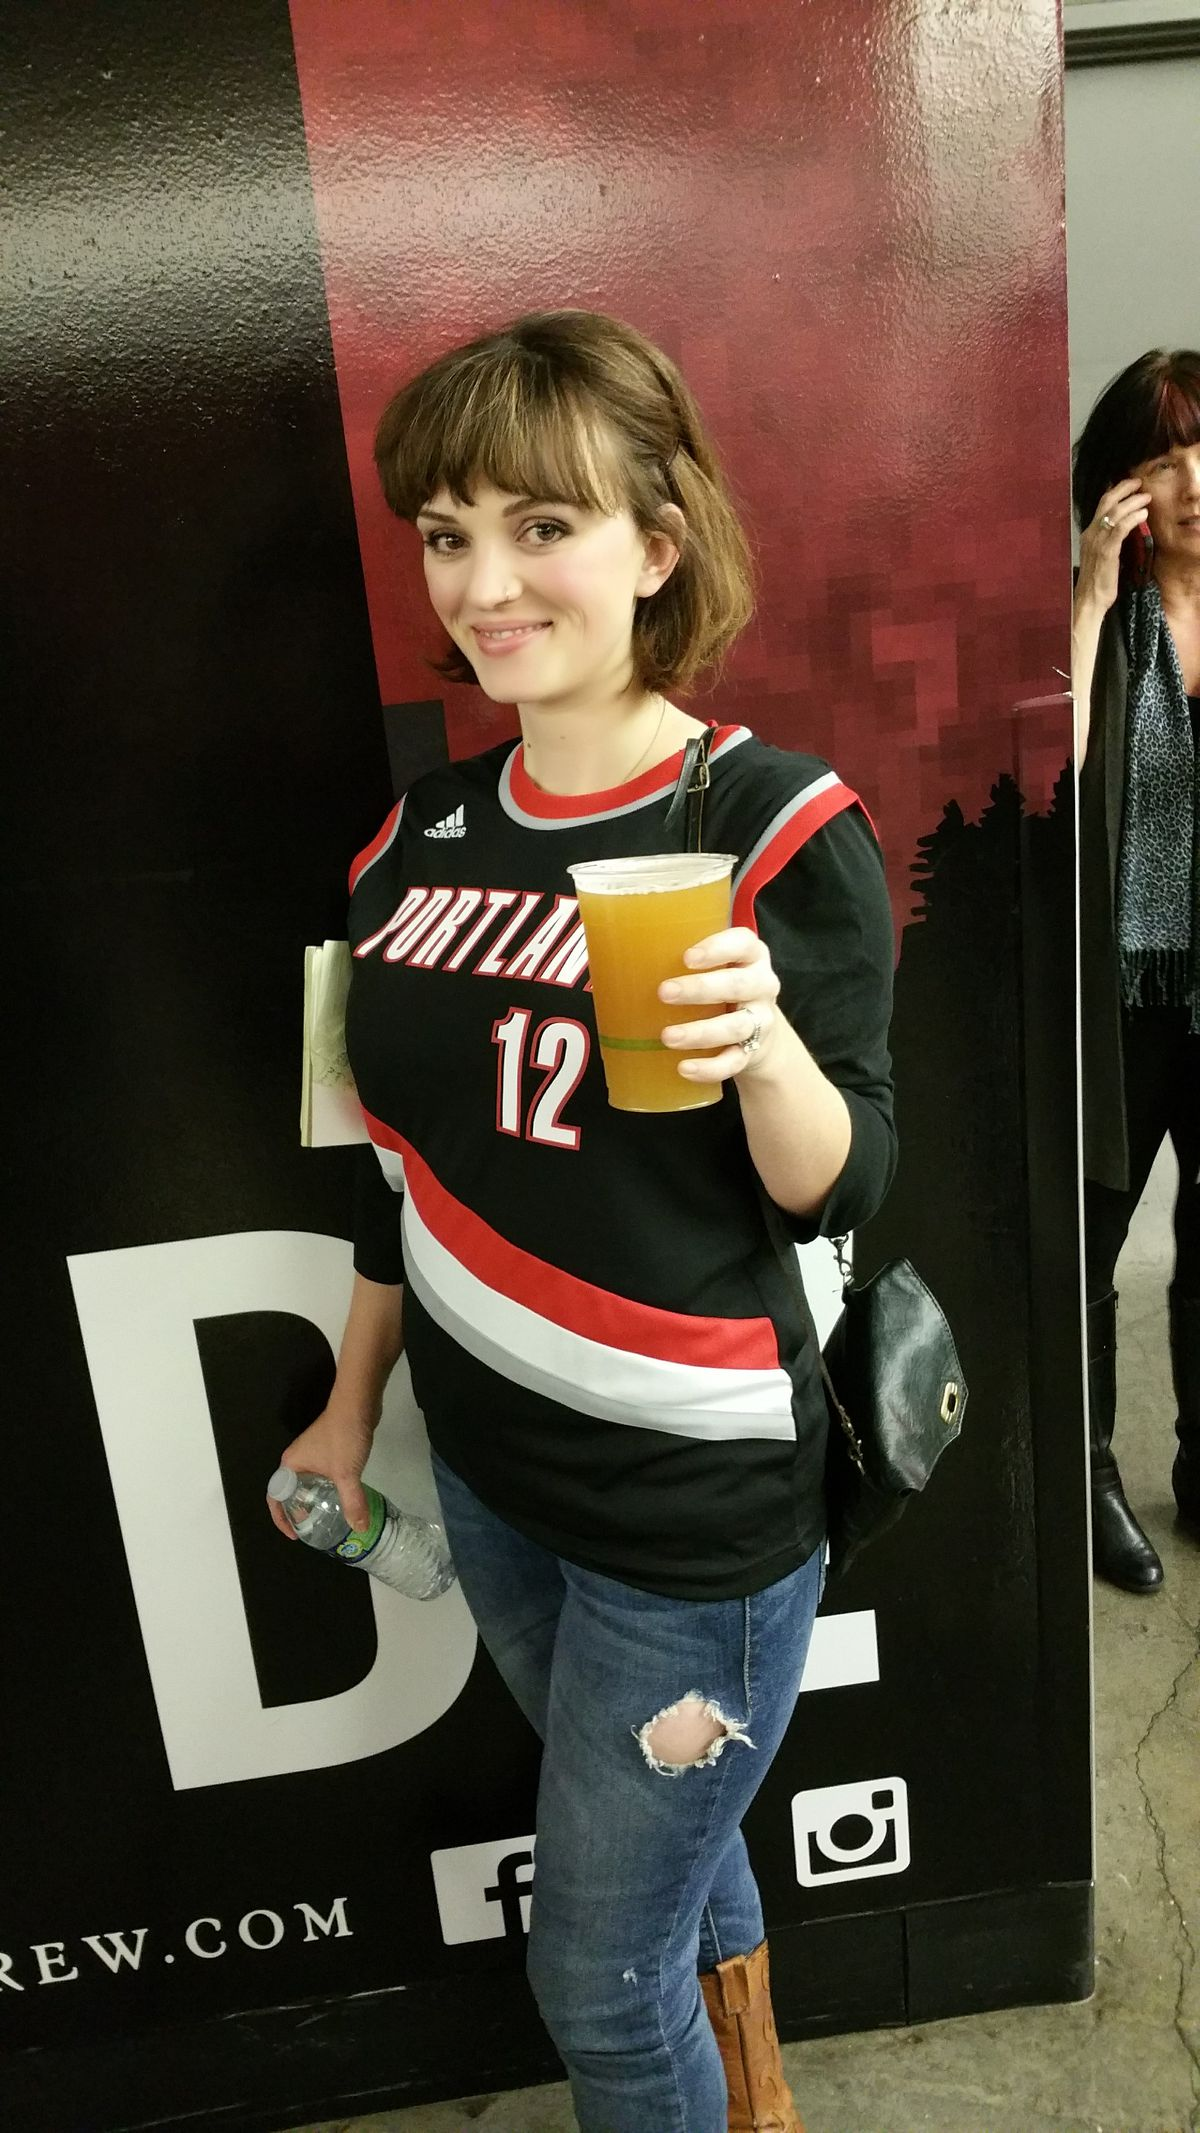 fa572ba36 Here she is rocking her brand new Aldridge jersey that she picked up at the  Hawks game last week.